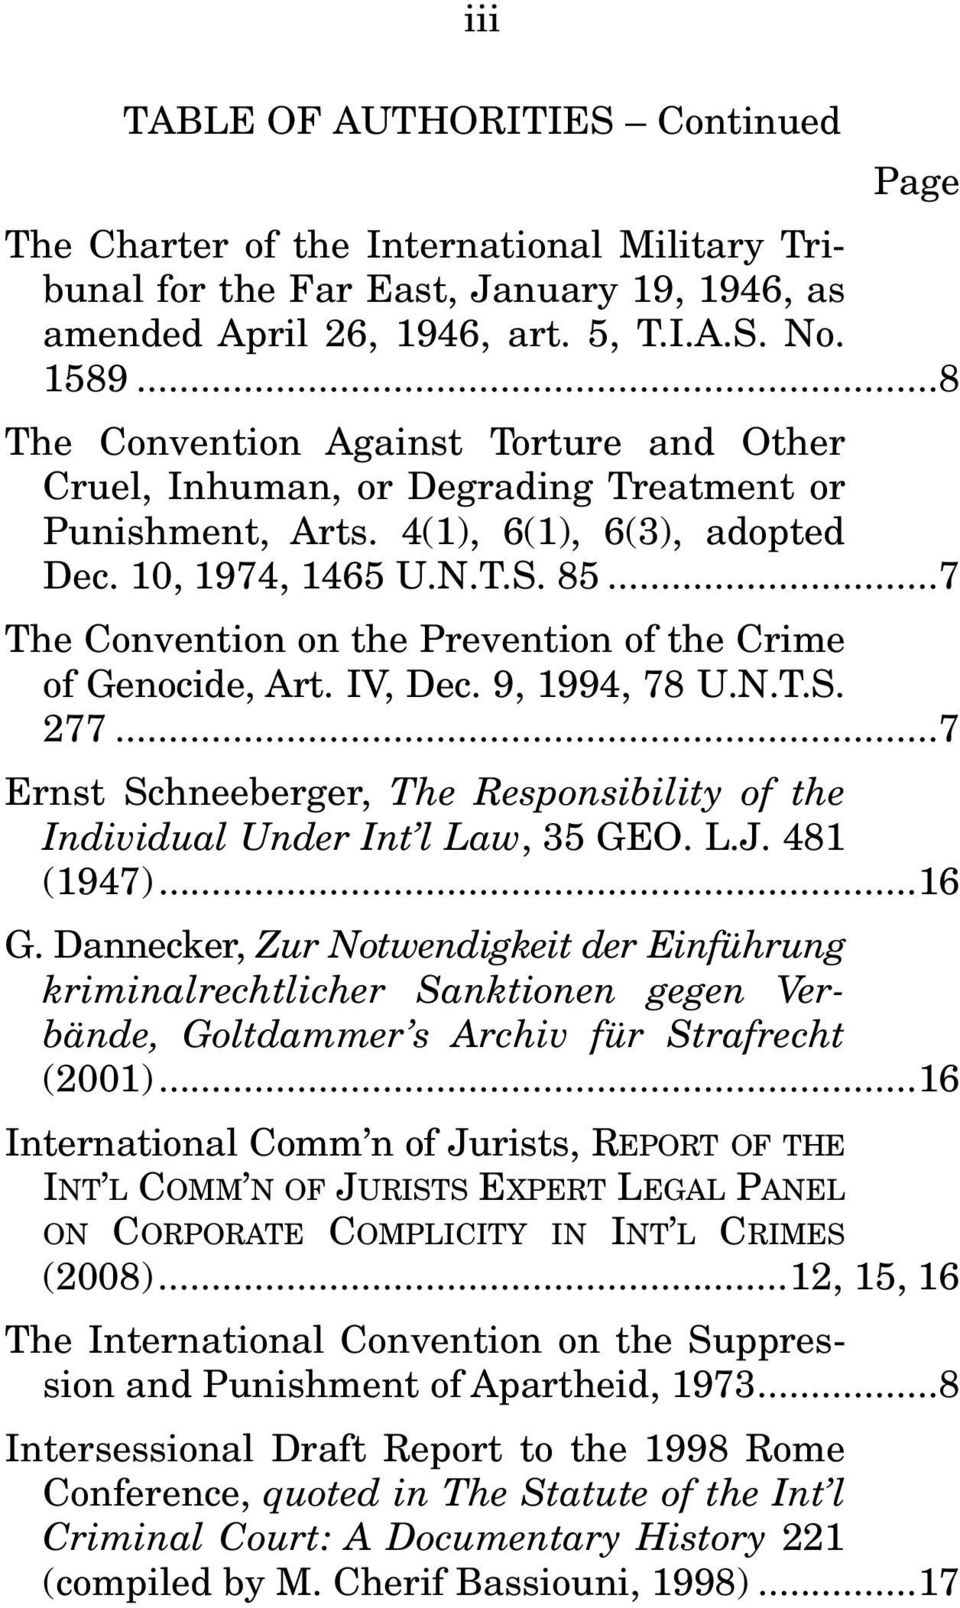 .. 7 The Convention on the Prevention of the Crime of Genocide, Art. IV, Dec. 9, 1994, 78 U.N.T.S. 277... 7 Ernst Schneeberger, The Responsibility of the Individual Under Int l Law, 35 GEO. L.J.